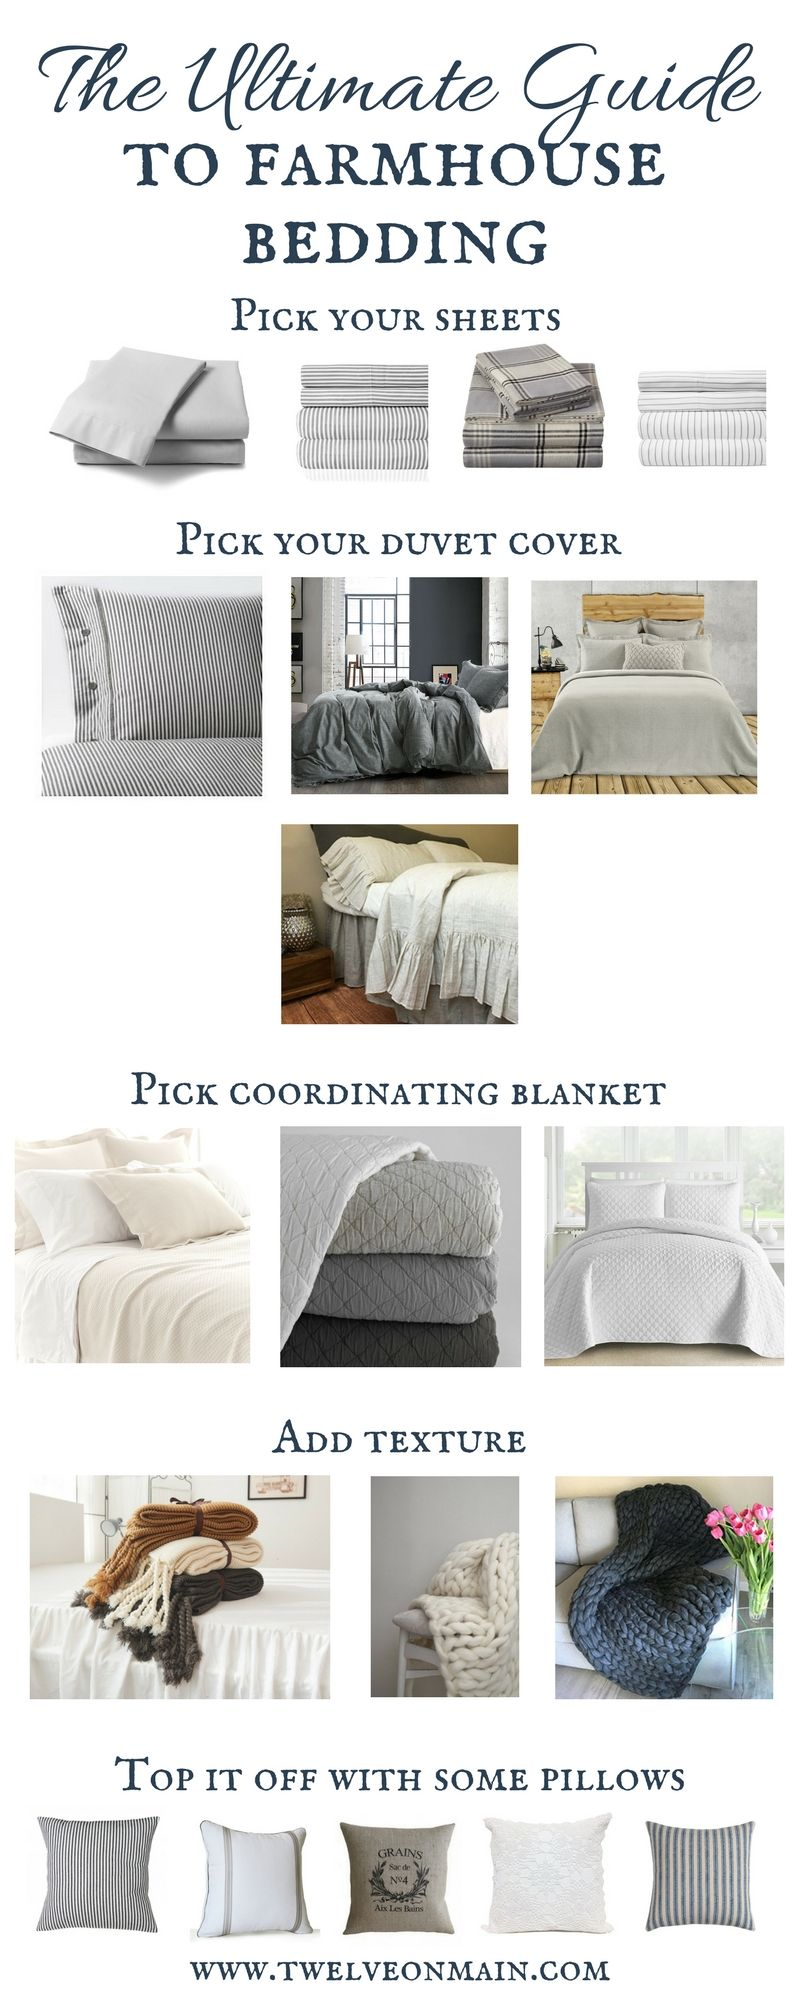 The Ultimate Guide To Farmhouse Bedding And Bedroom Decor Farmhouse Bedding Neutral Bedding Bedroom Farmhouse Bedroom Decor